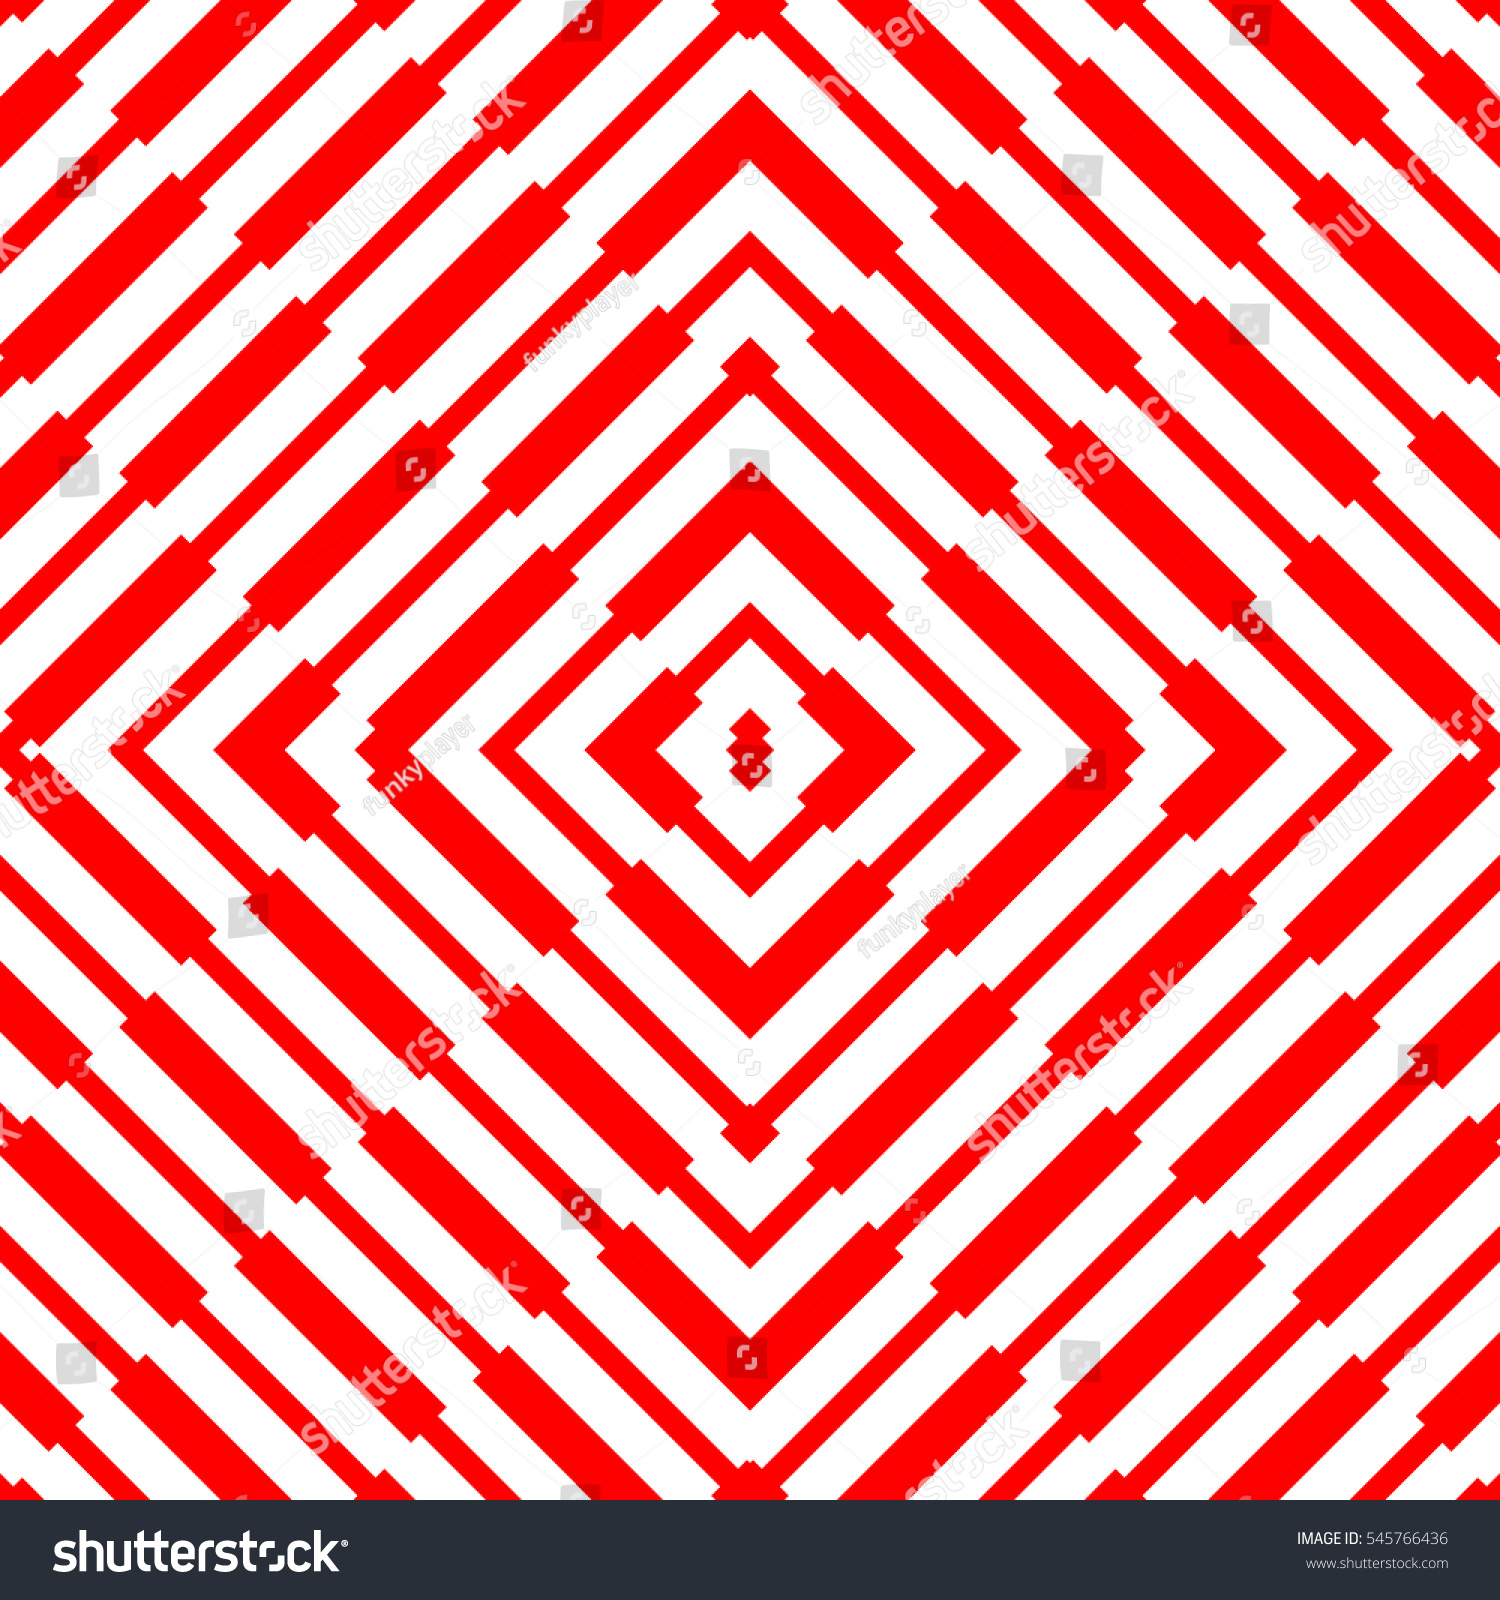 And black diagonal stripes background seamless background or wallpaper - Red Diagonal Lines On White Background Striped Wallpaper Seamless Surface Pattern Design With Symmetrical